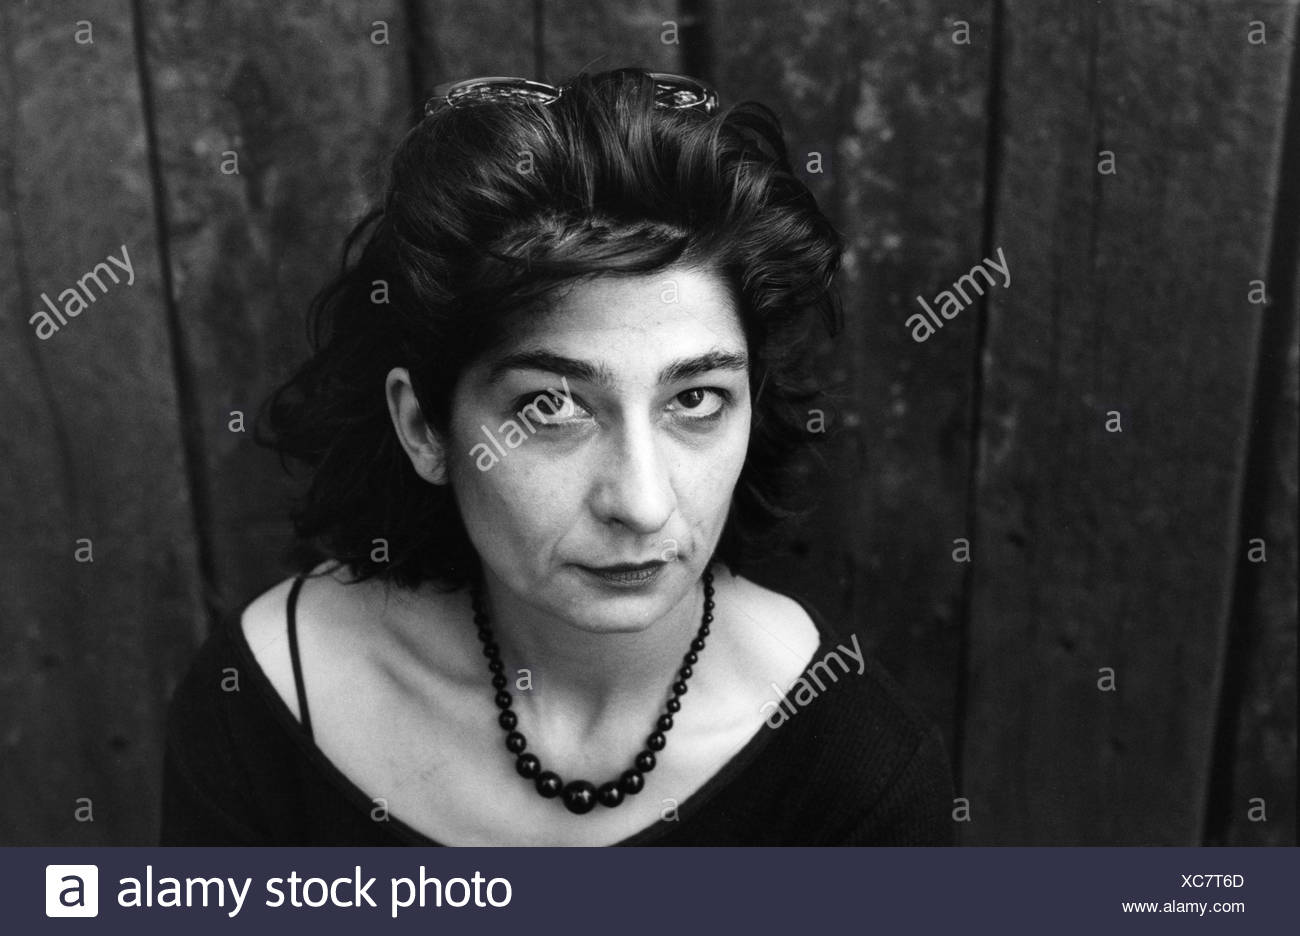 Feyrer, Gundi, * 1956, German author / writer, portrait, 1999, Additional-Rights-Clearances-NA - Stock Image